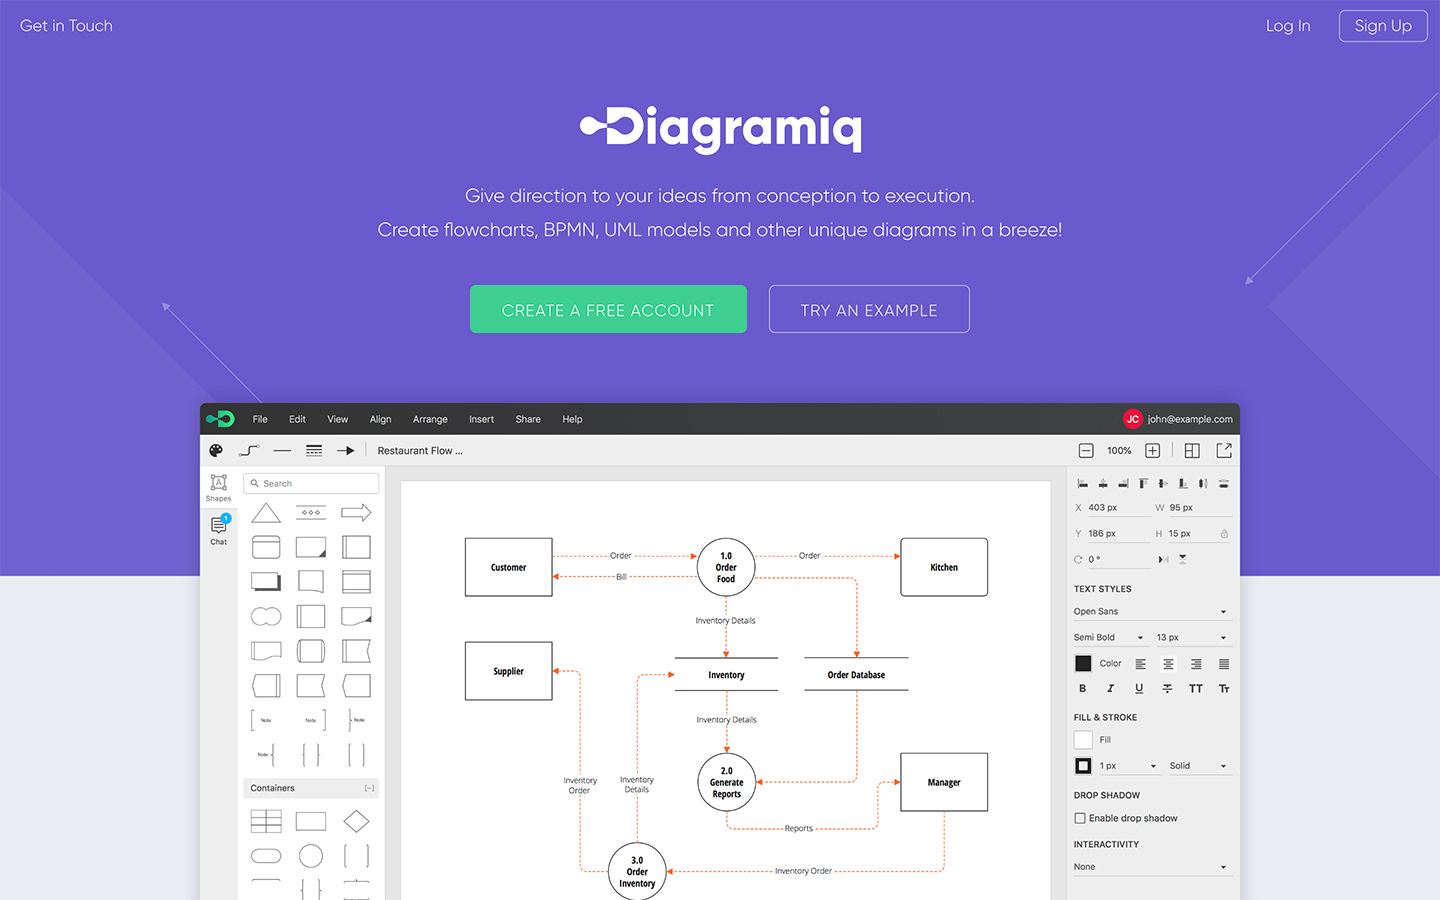 Go To Diagramiq Flowcharts